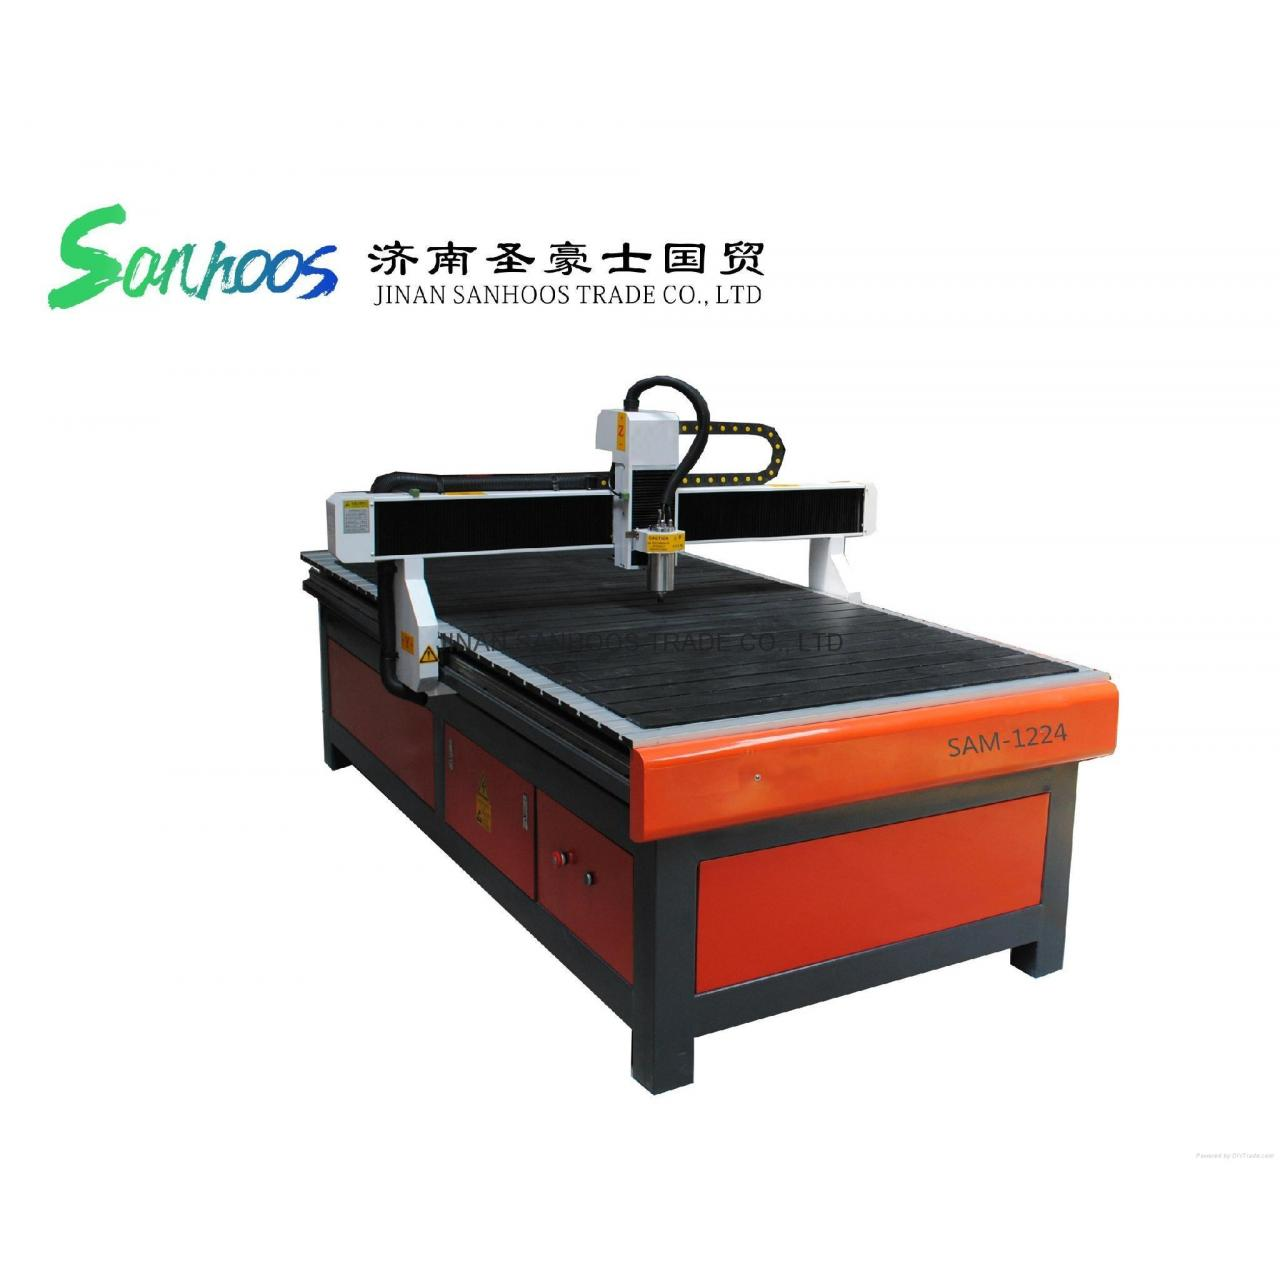 Buy cheap Sam Ball Screw CNC Router Machine SAM-1224 product